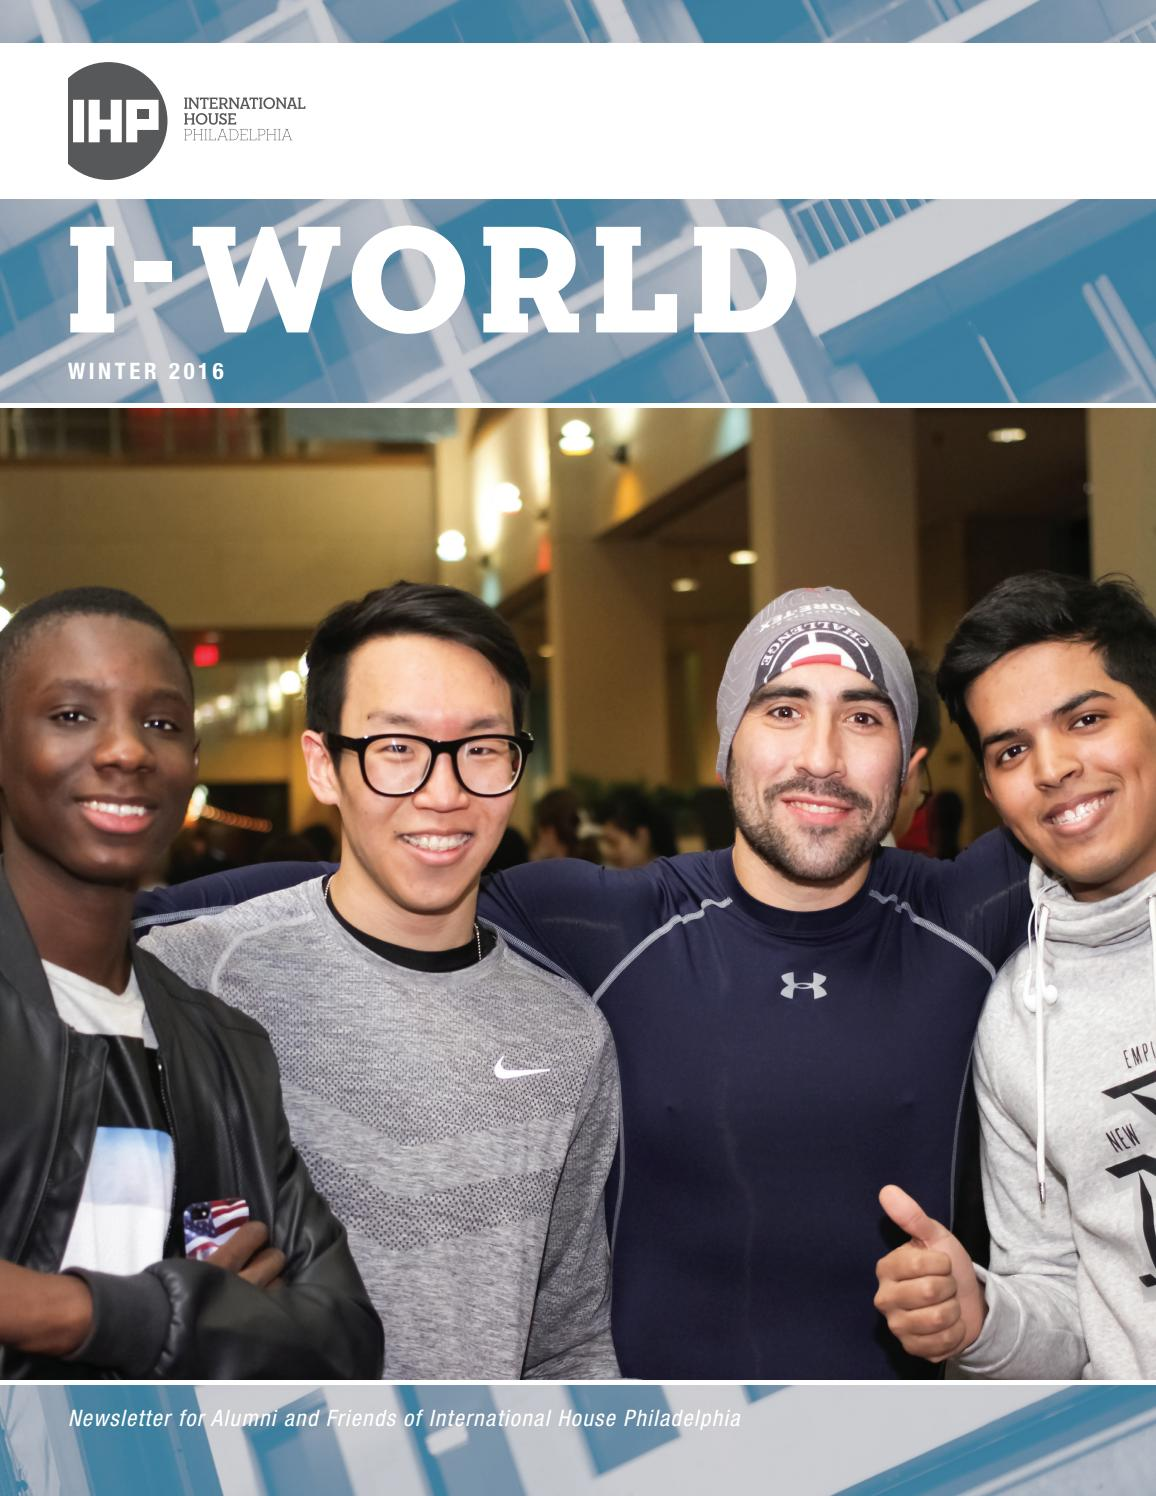 i-world winter 2016 by international house philadelphia - issuu